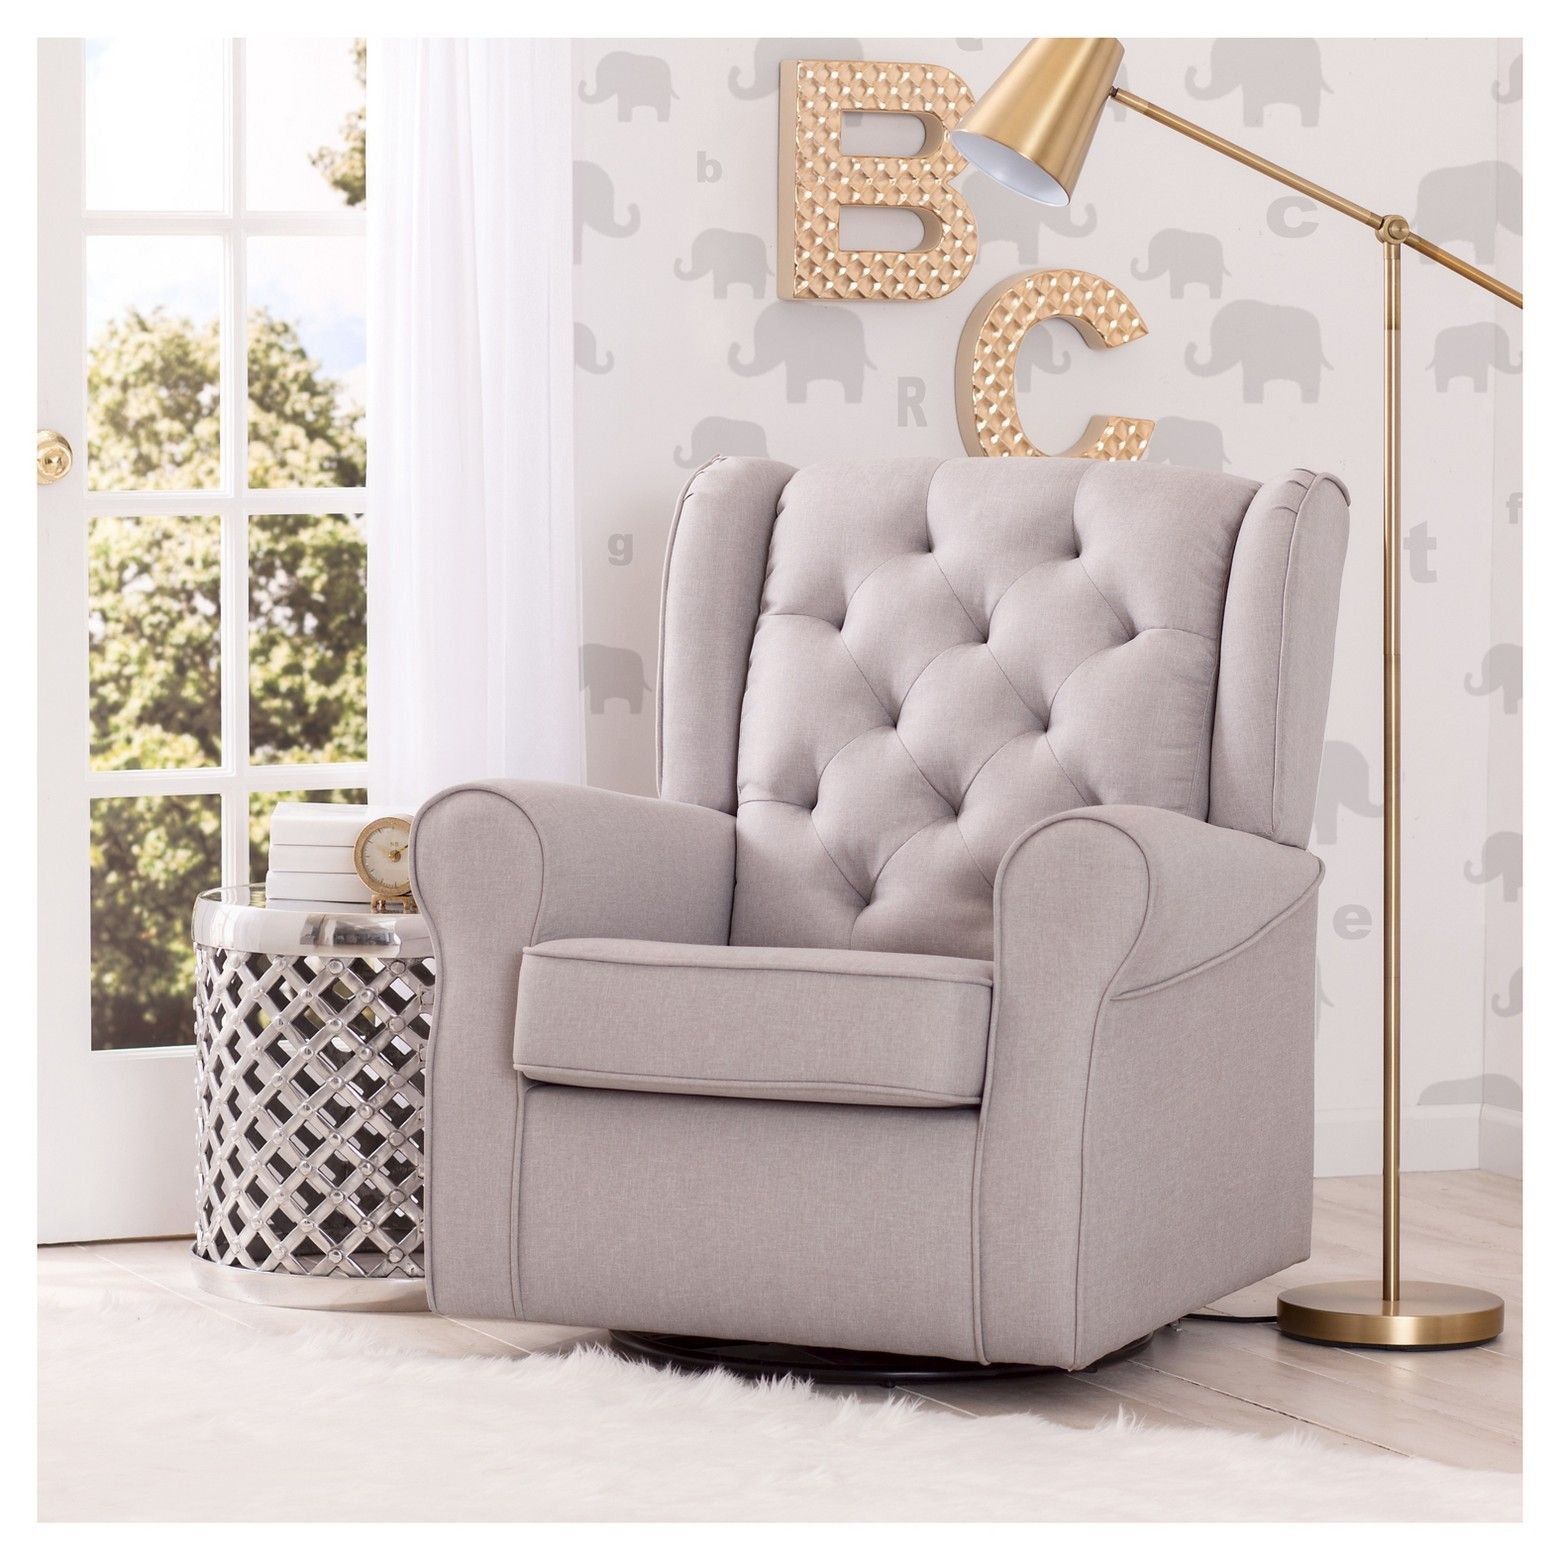 Baby Relax Zoe Tufted Rocking Chair Gray, Adult Unisex